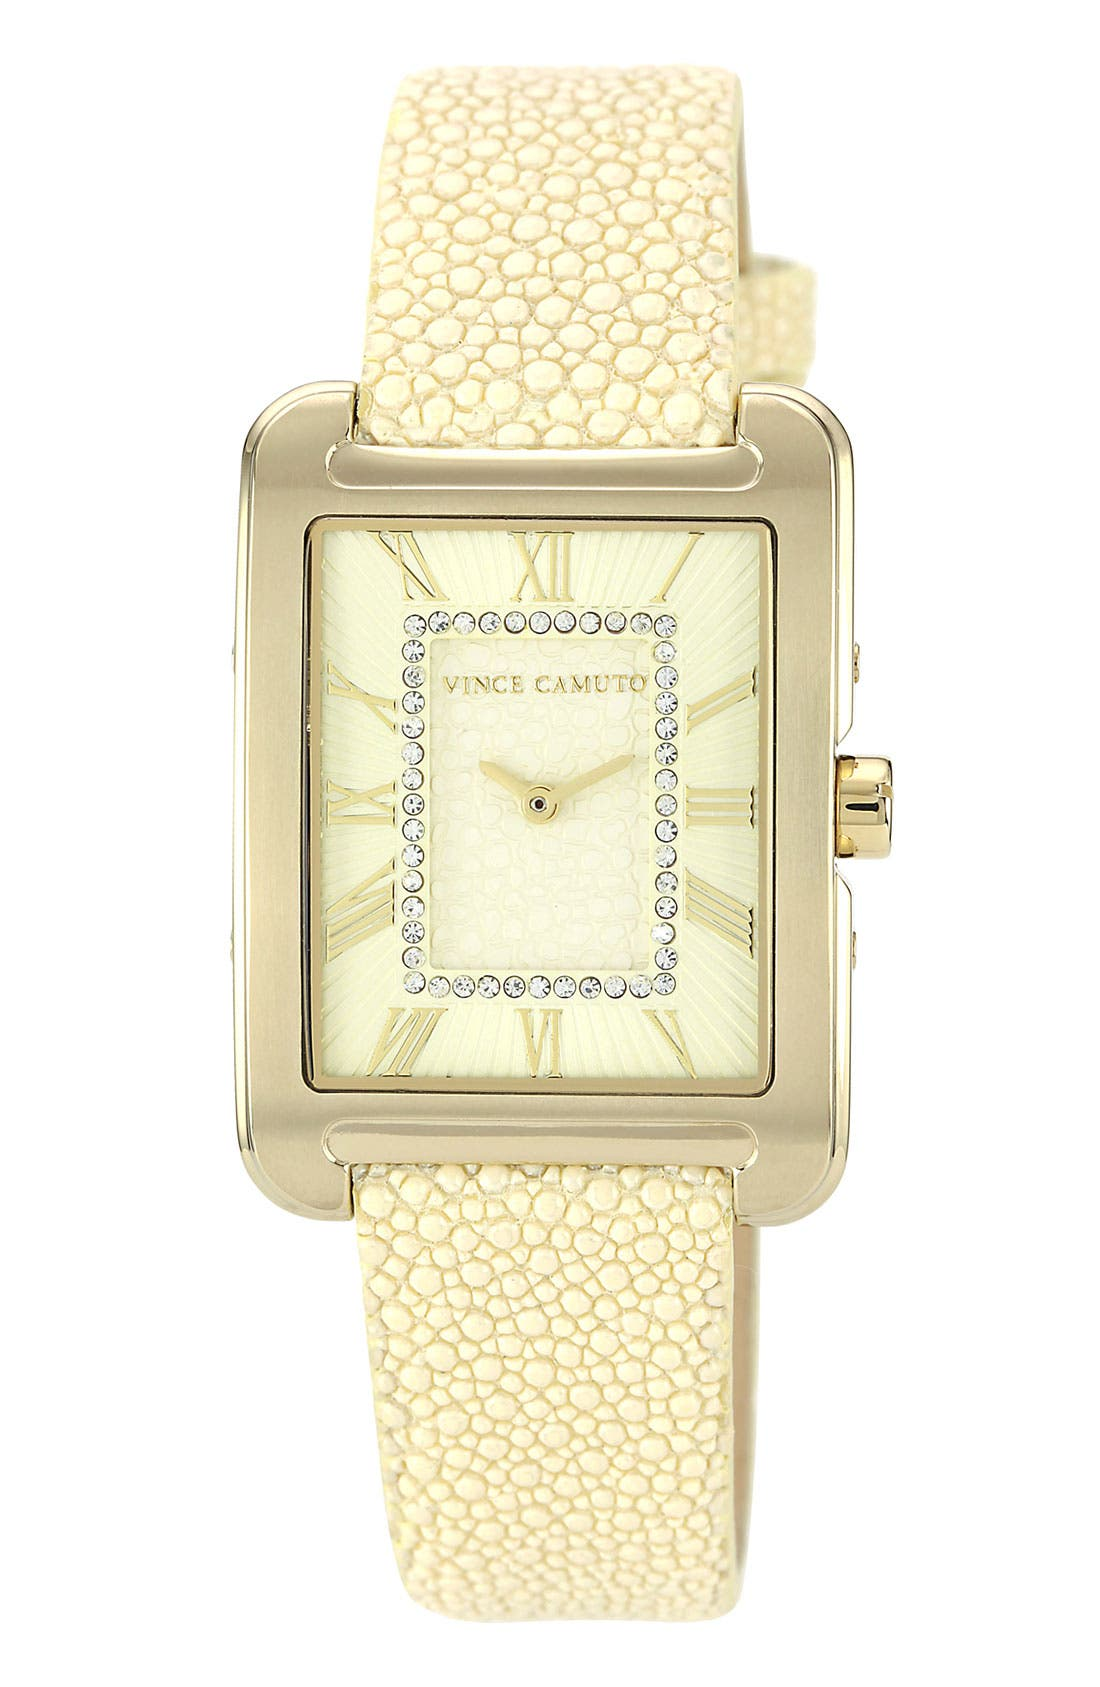 Alternate Image 1 Selected - Vince Camuto Stingray Print Dial & Embossed Strap Watch, 29mm x 34mm